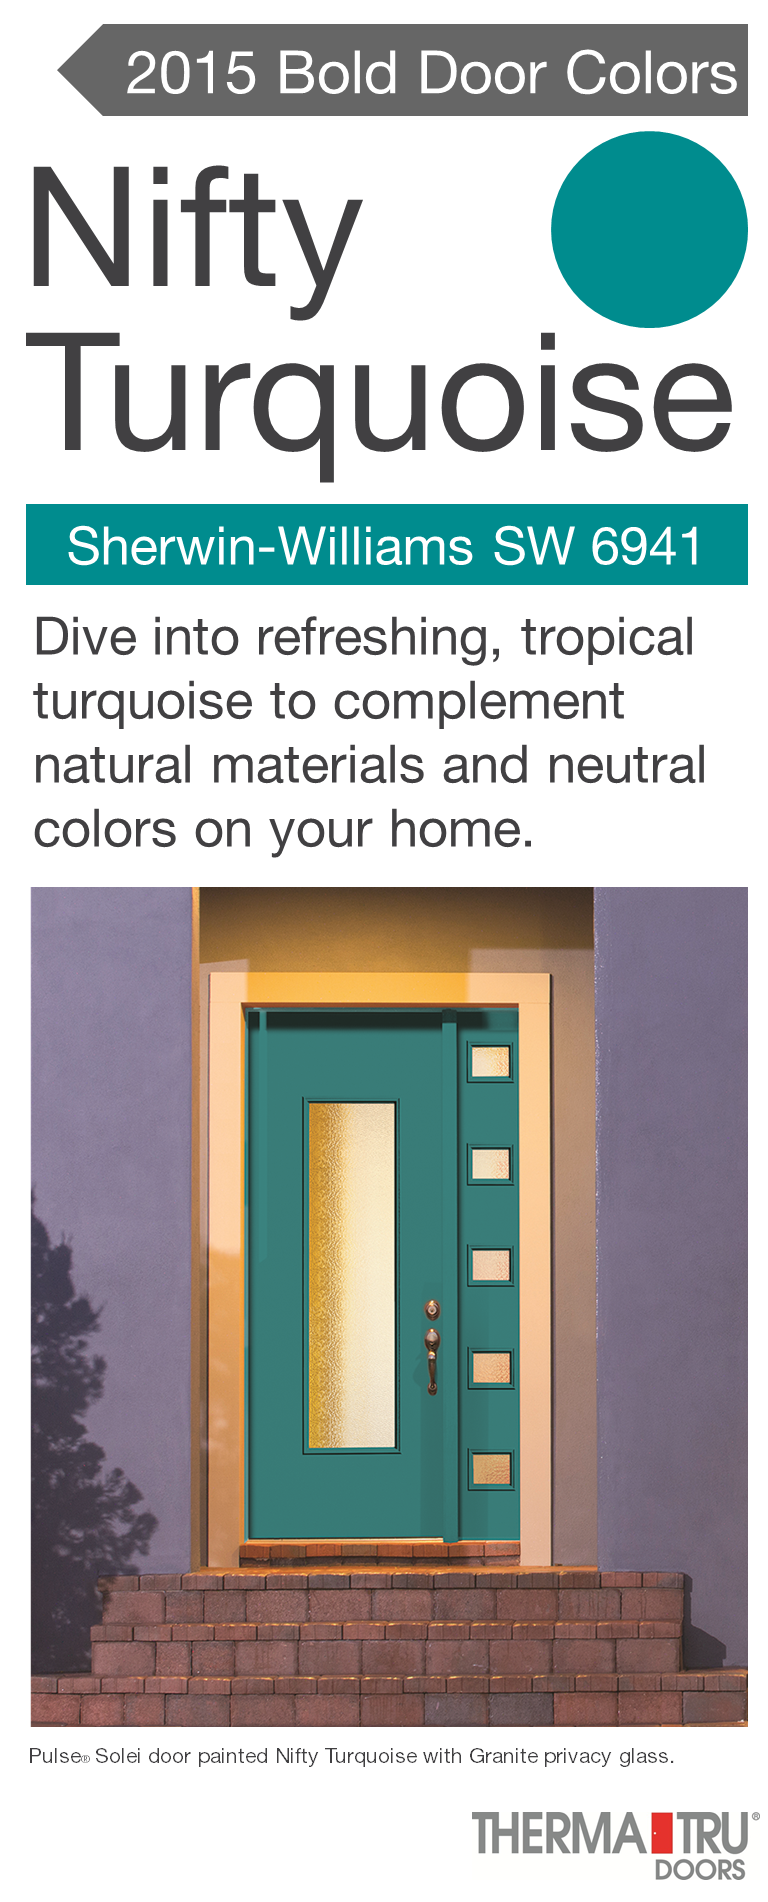 Pulse Solei fiberglass door painted Nifty Turquoise u2013 one of the hot door colors for 2015  sc 1 st  Pinterest & Pulse Solei fiberglass door painted Nifty Turquoise u2013 one of the ... pezcame.com